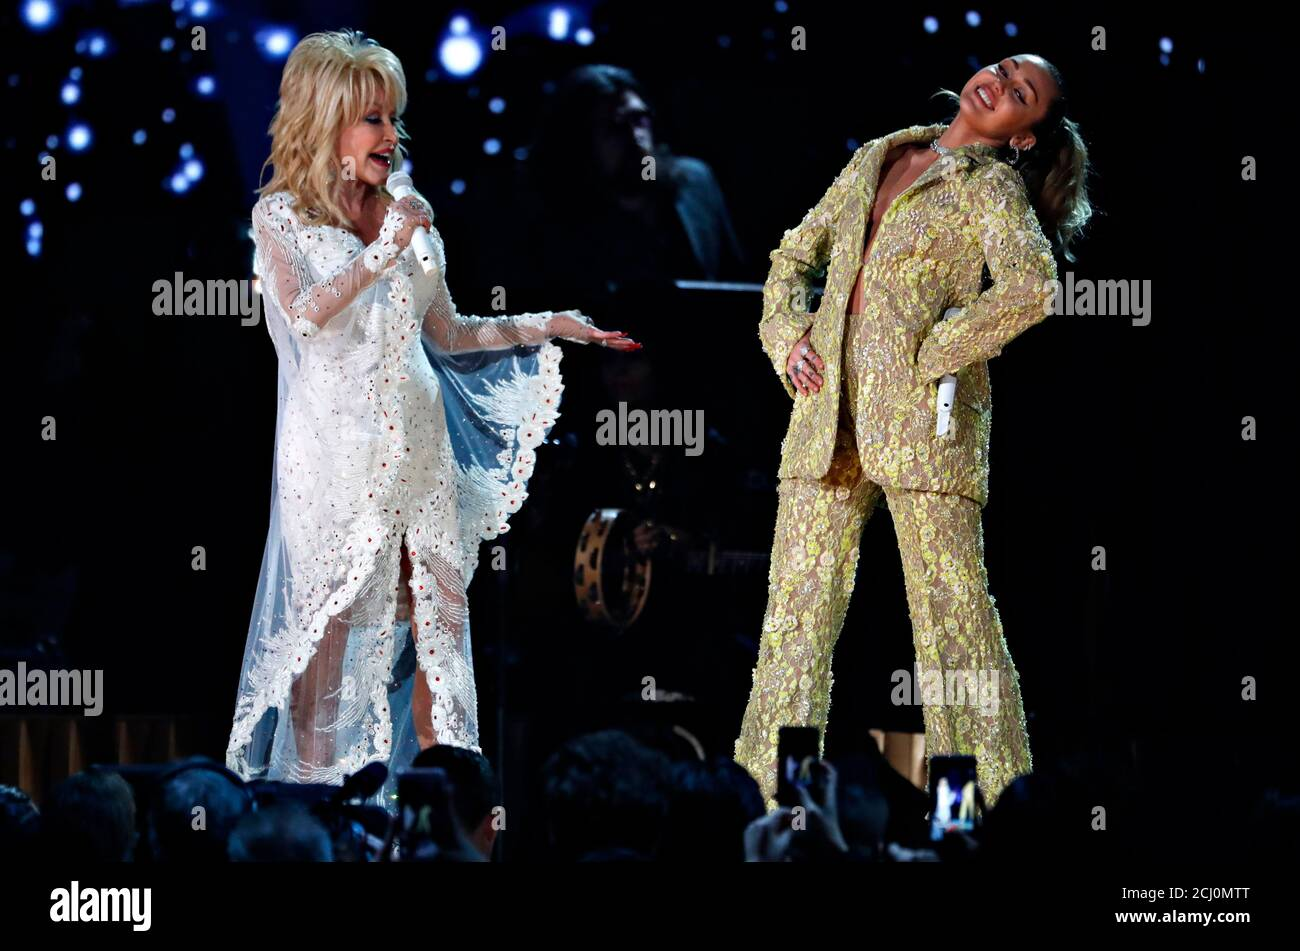 Miley Cyrus Perform High Resolution Stock Photography And Images Alamy